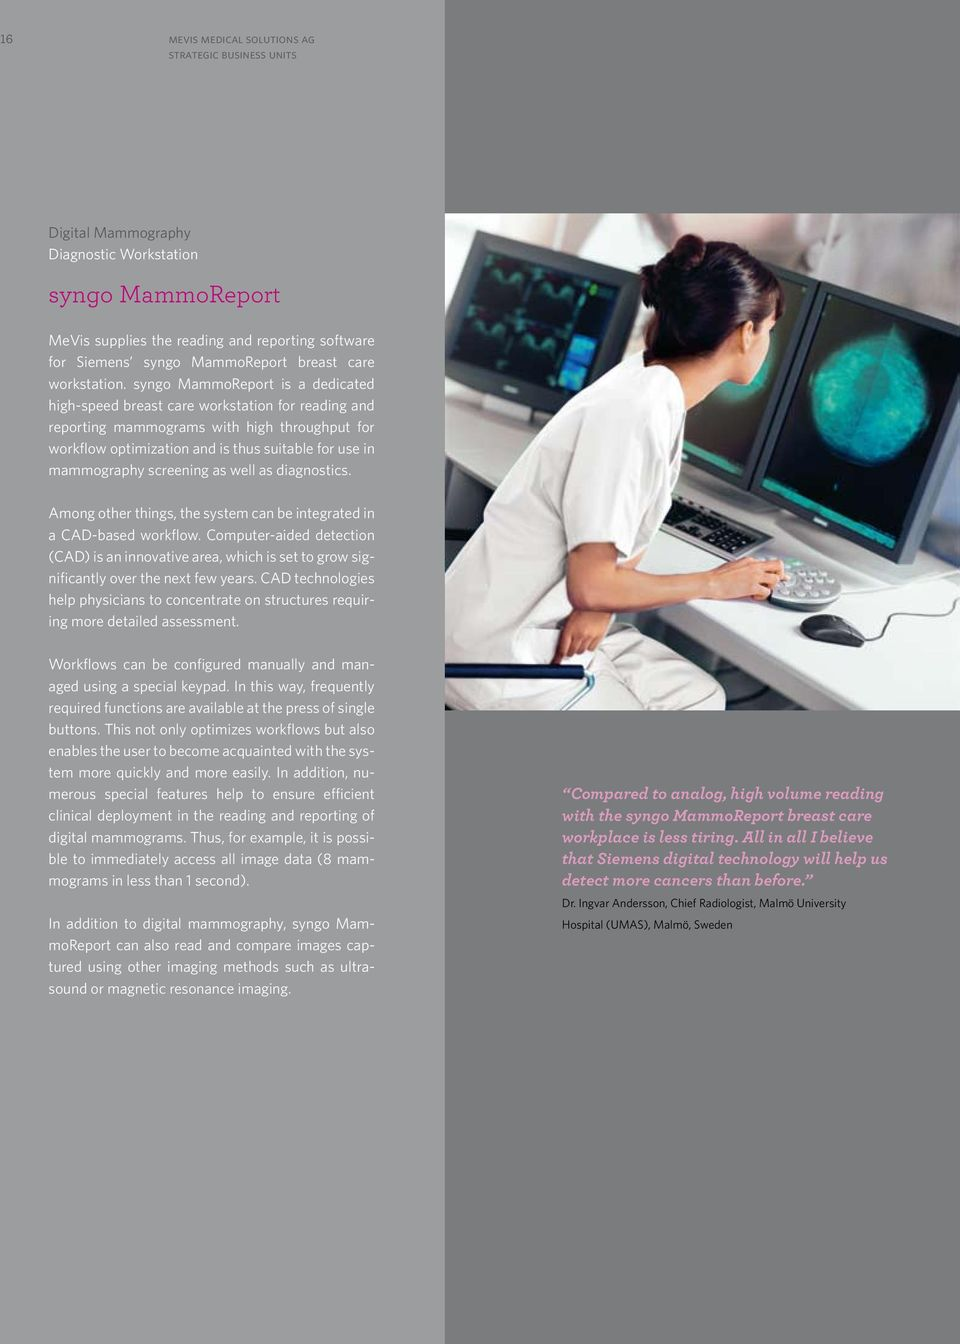 syngo MammoReport is a dedicated high-speed breast care workstation for reading and reporting mammograms with high throughput for workflow optimization and is thus suitable for use in mammography